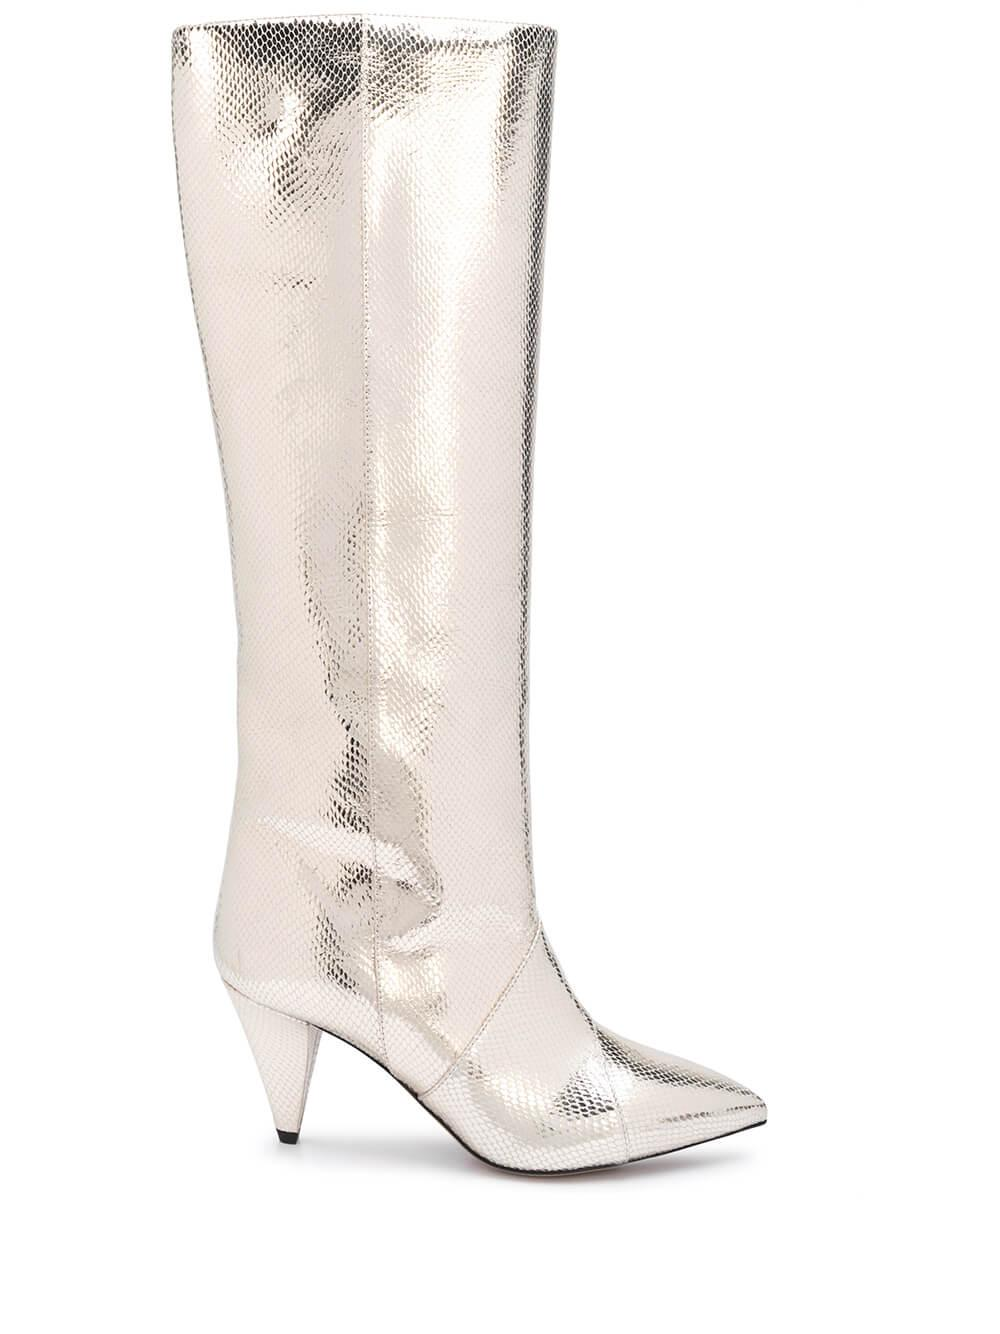 Metallic Tall High Heel Boot Item # LAOMI